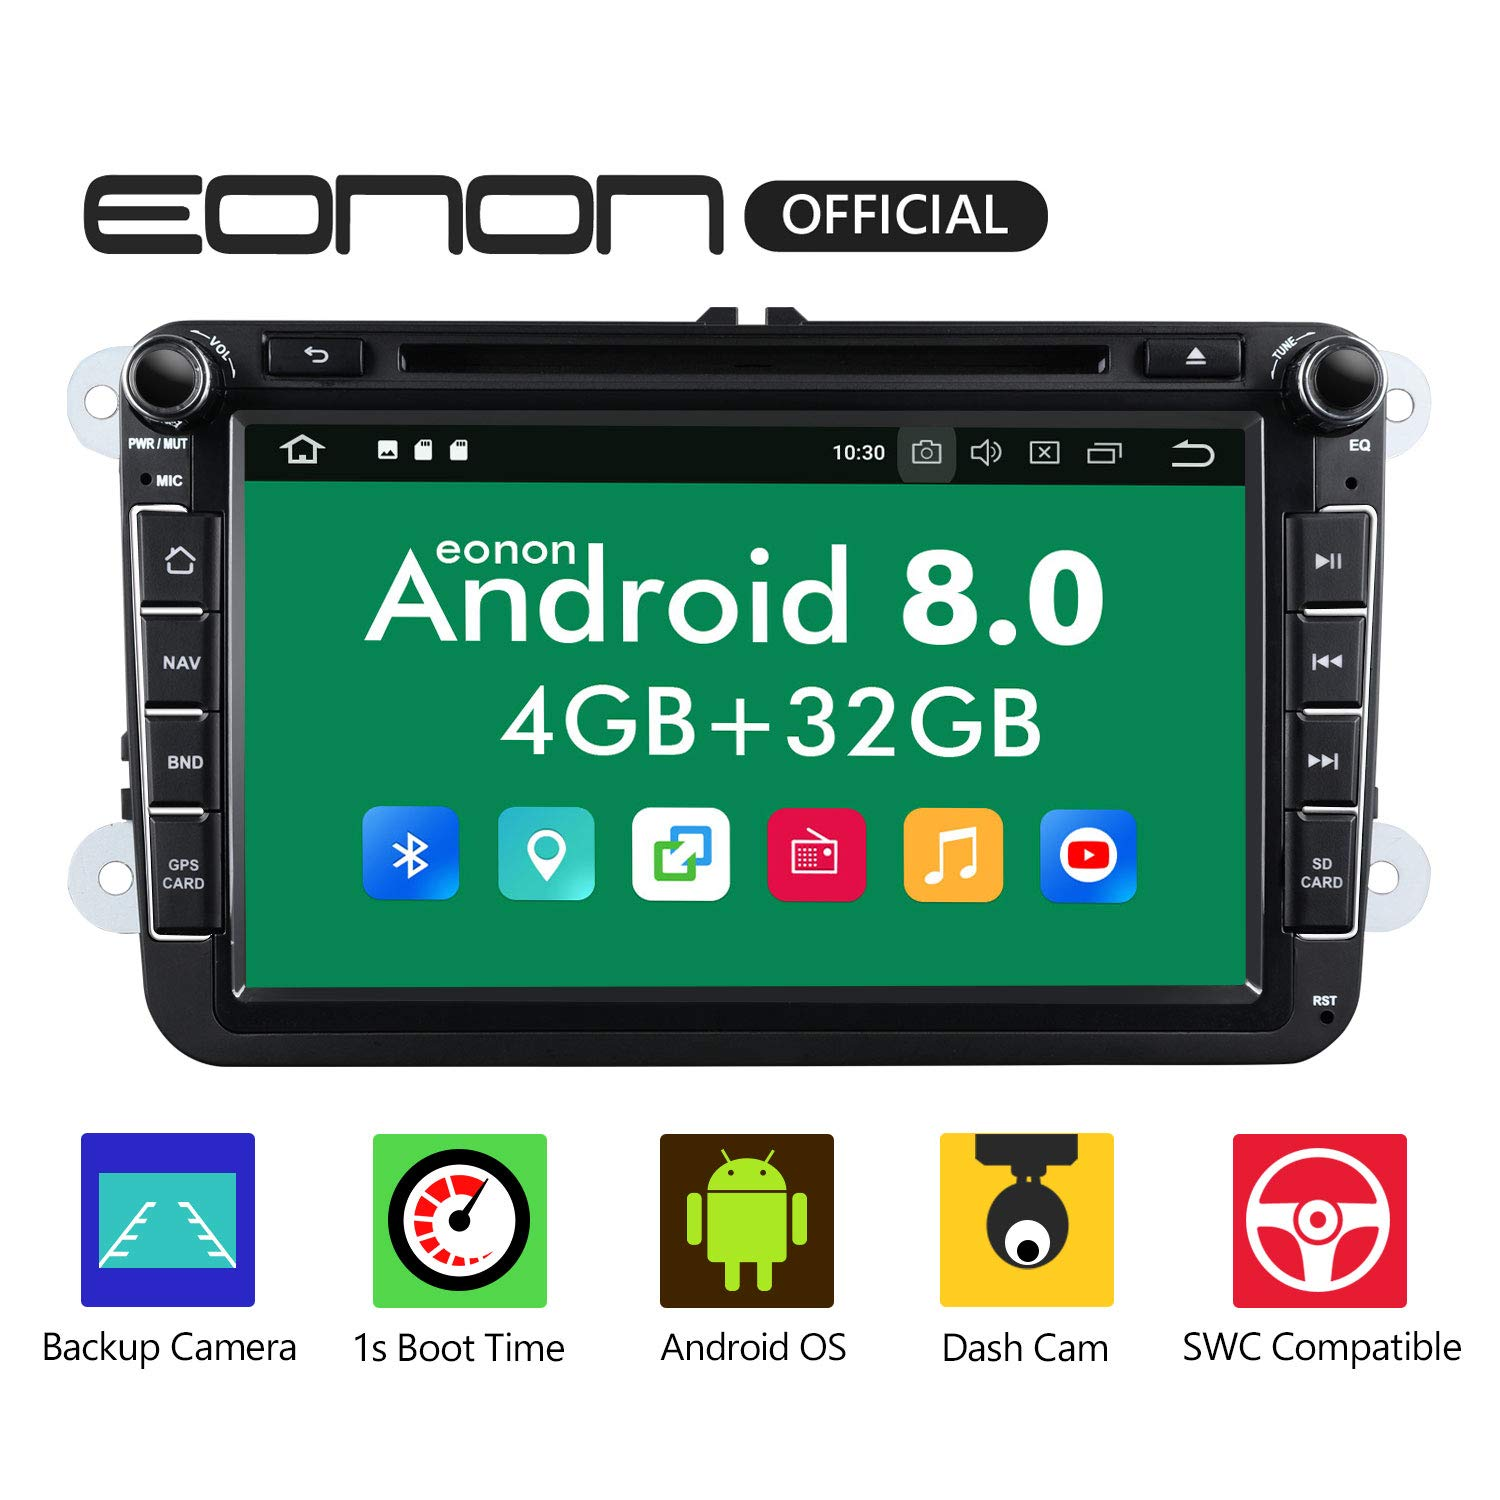 Car Stereo,Double Din Car Stereo,Eonon Dual Bluetooth Android 8.0 Car Apple CarPlay Car Radio Applicable to Volkswagen/SEAT/Skoda 4GB RAM+32GB ROM Octa-Core 8 Inch with Fastboot Android Auto-GA9153A by Eonon